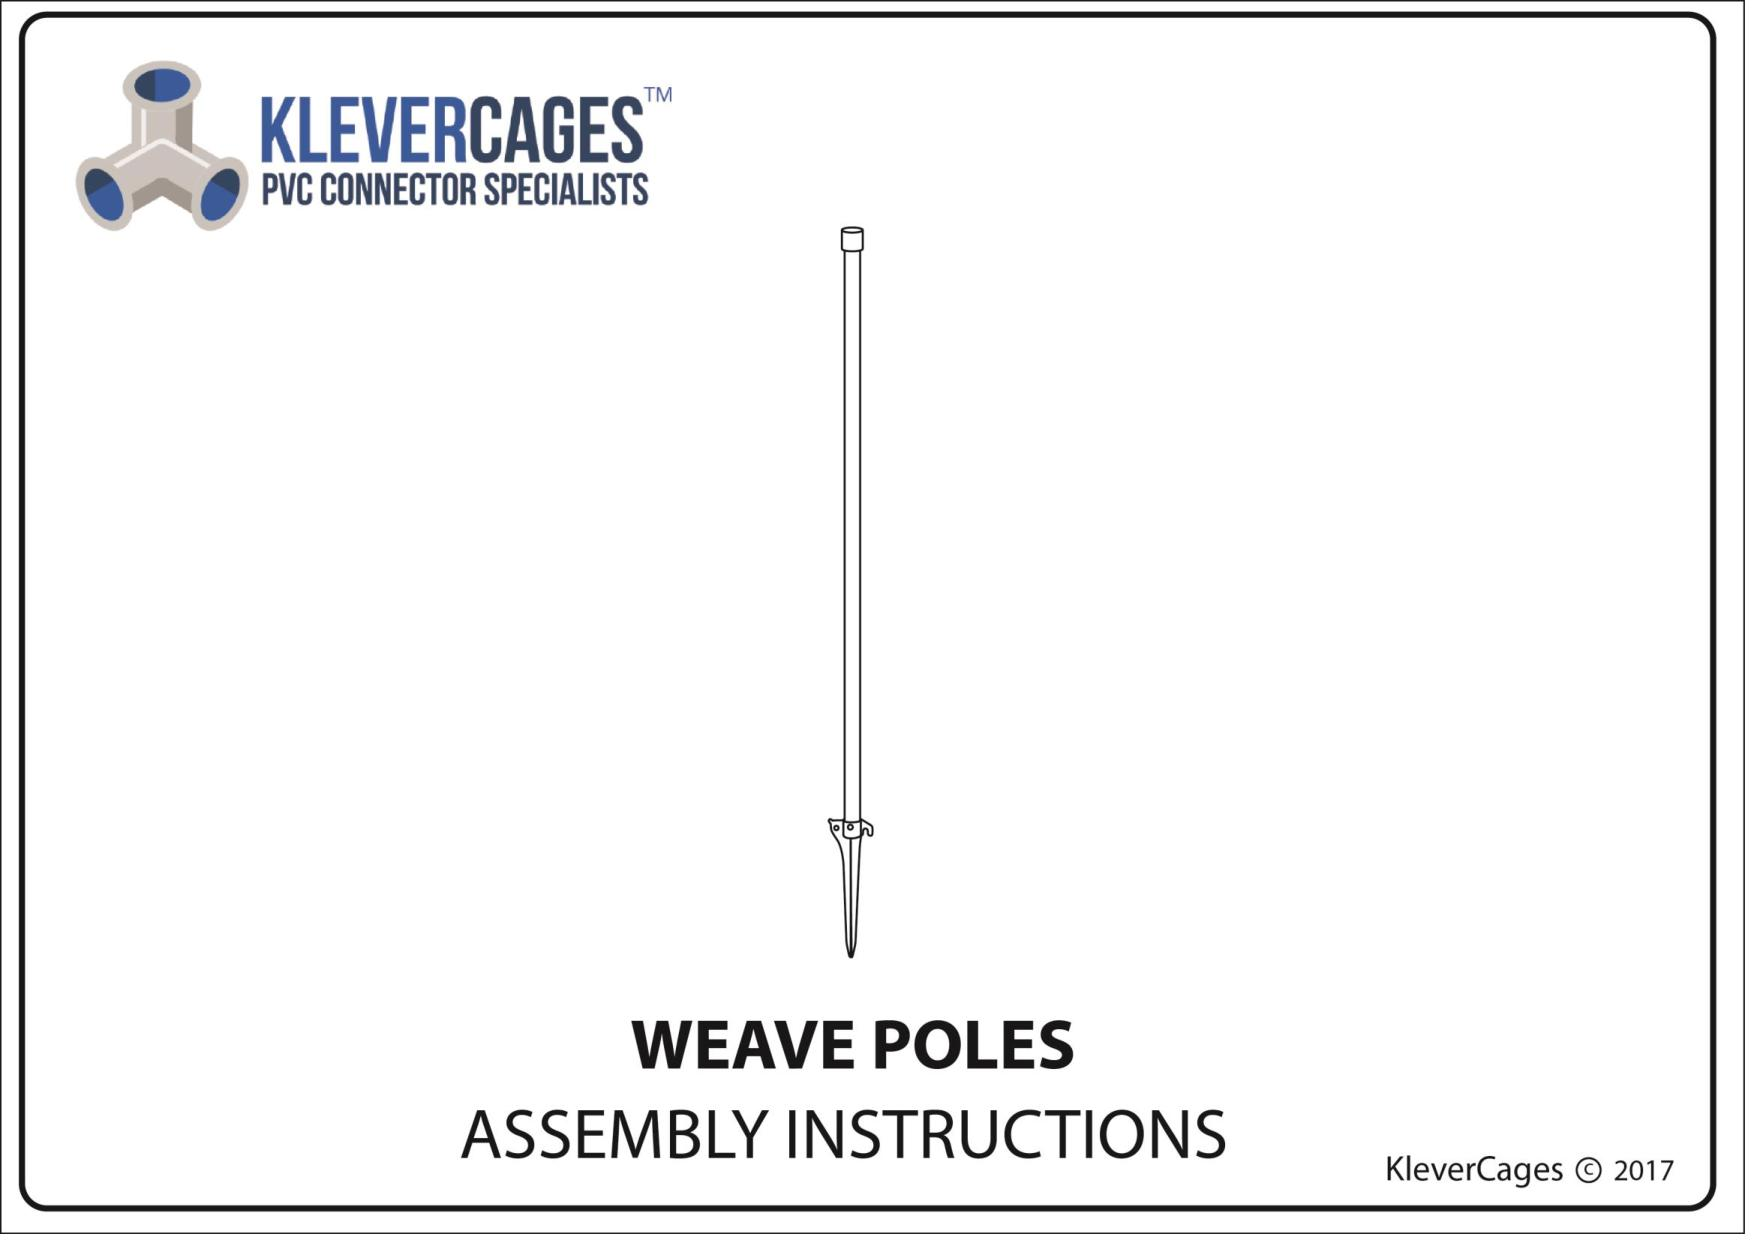 Dog agility weave poles PVC from Klever Cages perfect for practice for your next show